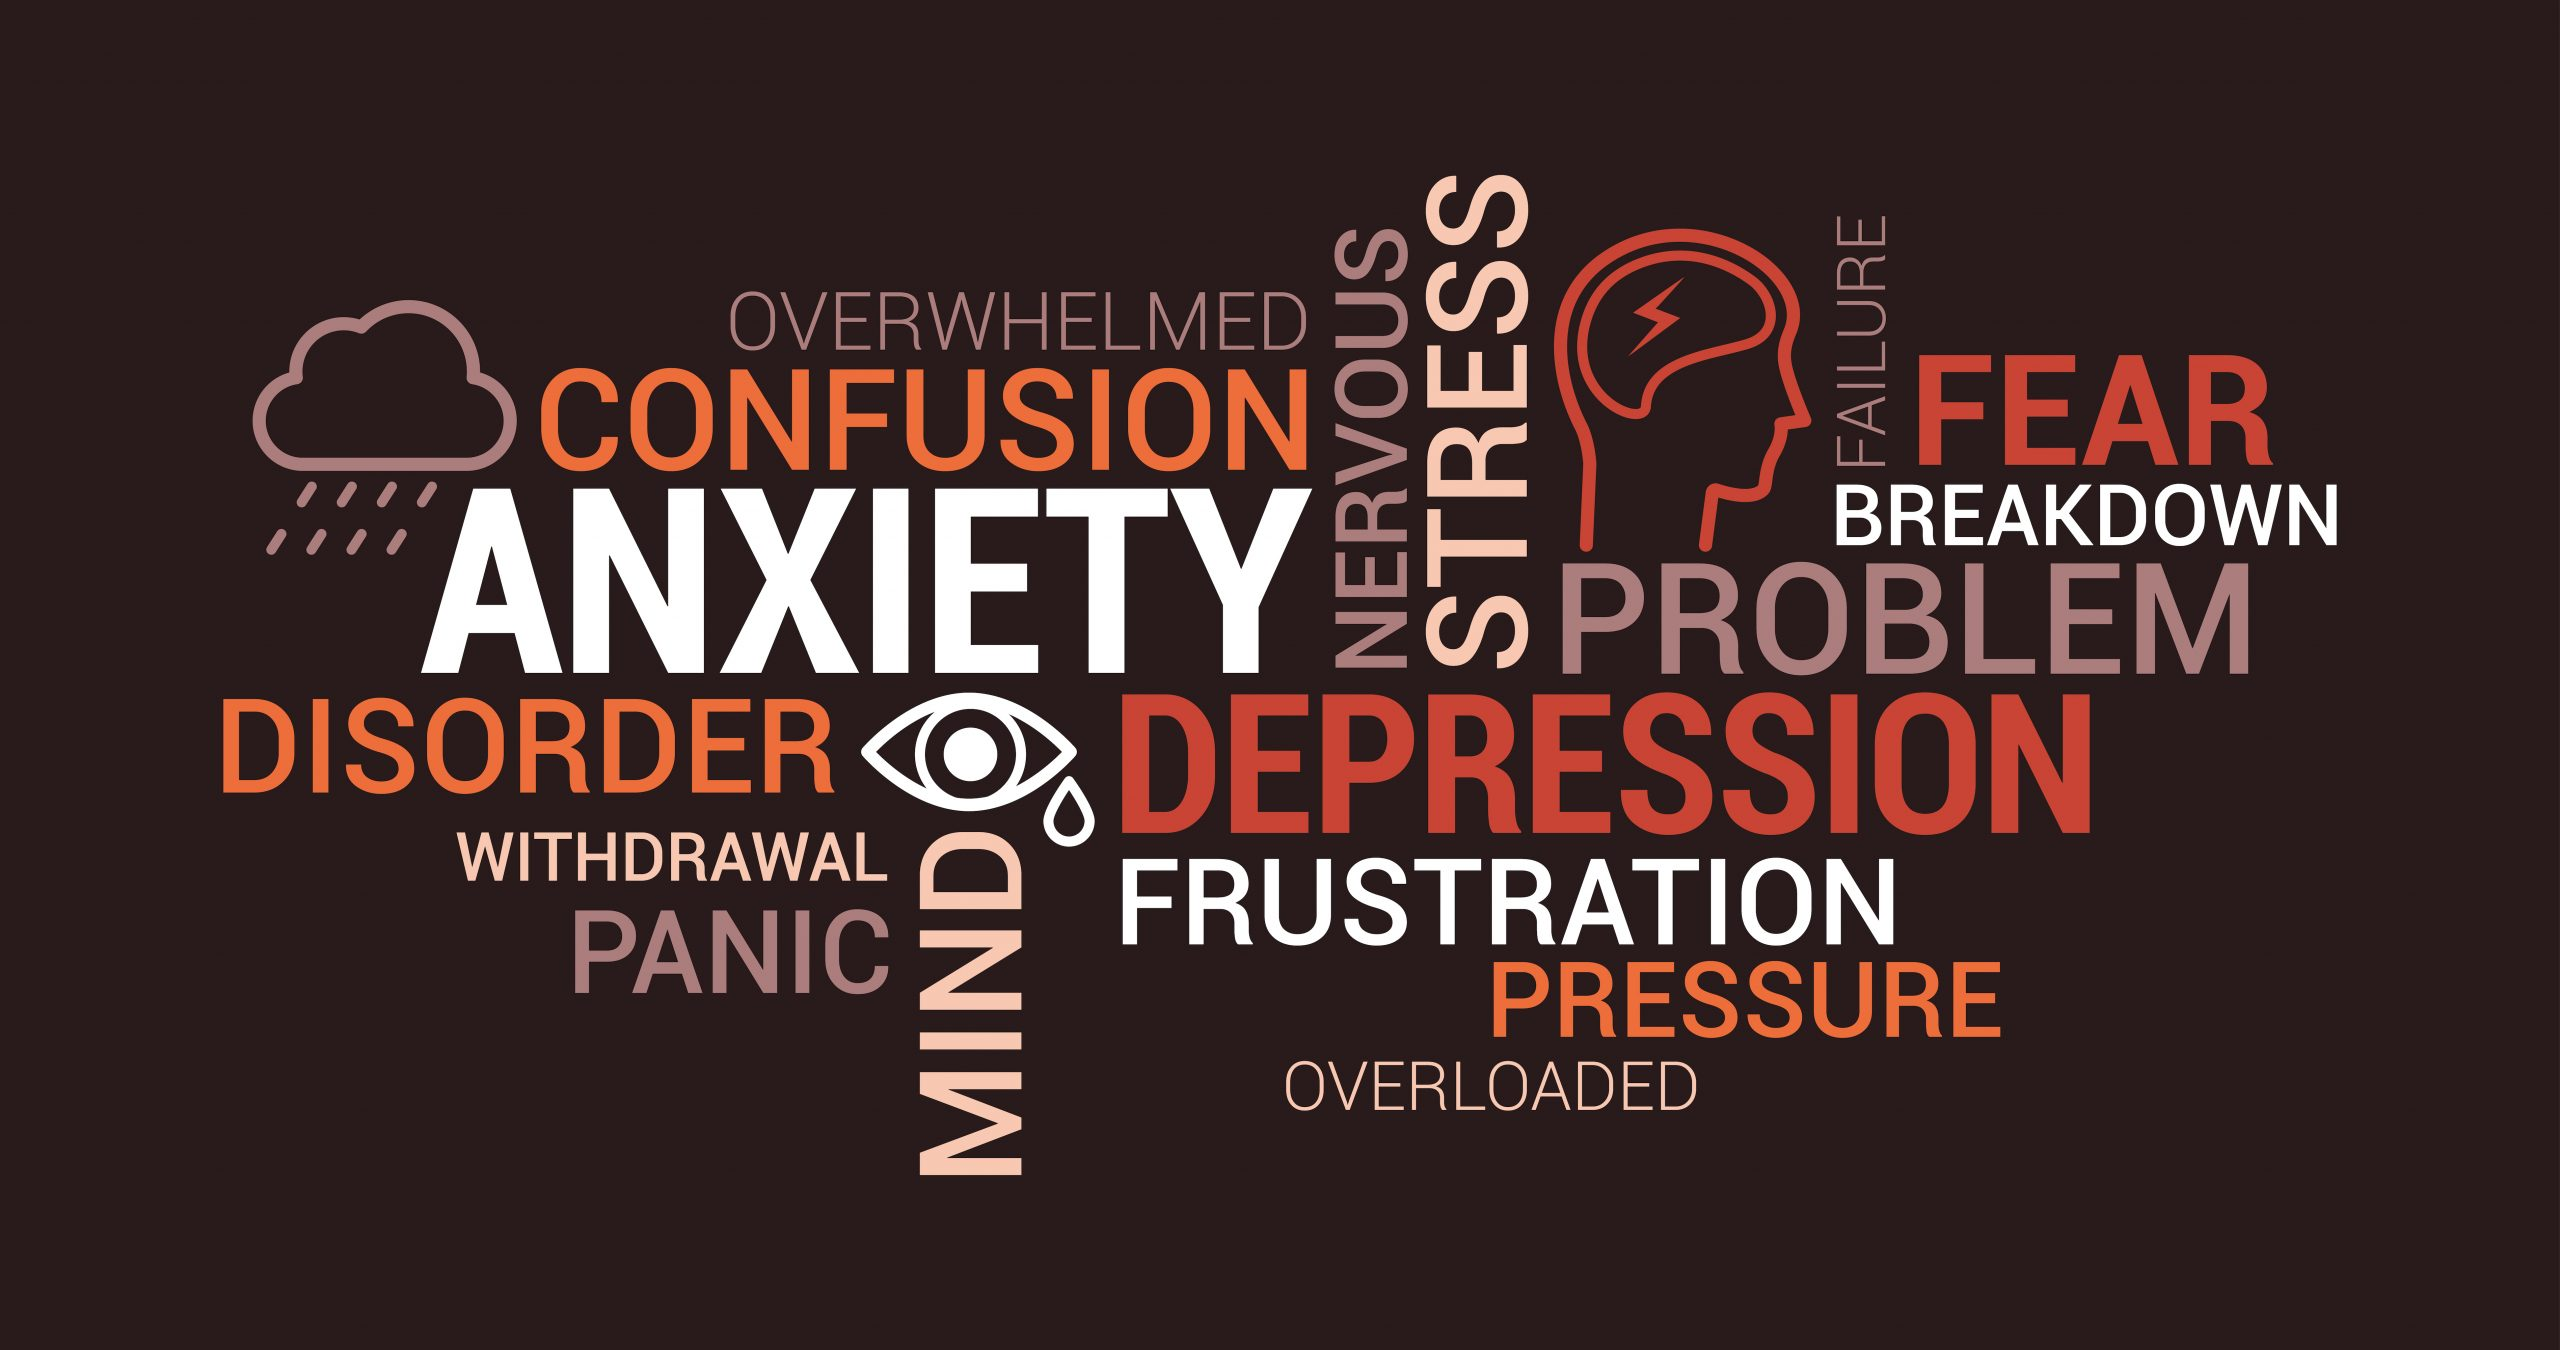 bigstock-Anxiety-Panic-And-Depression-254028472-scaled Understand your reaction to COVID-19